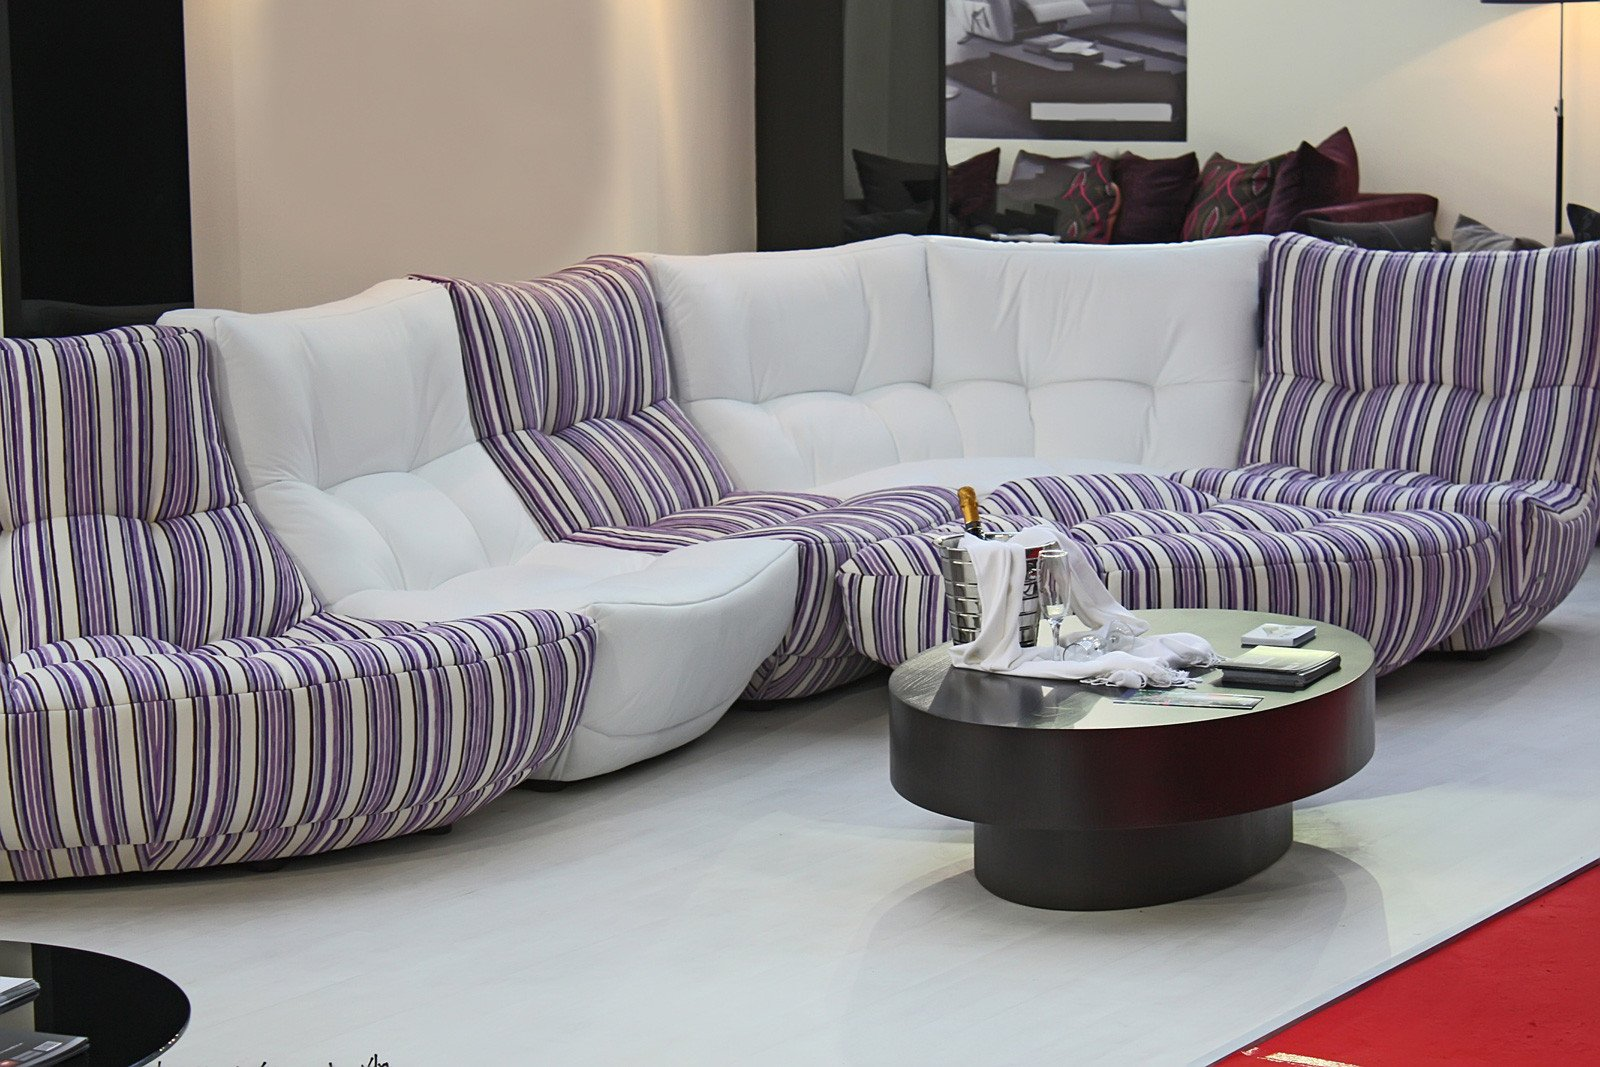 Most Comfortable Living Room Chair Beautiful Most fortable sofas